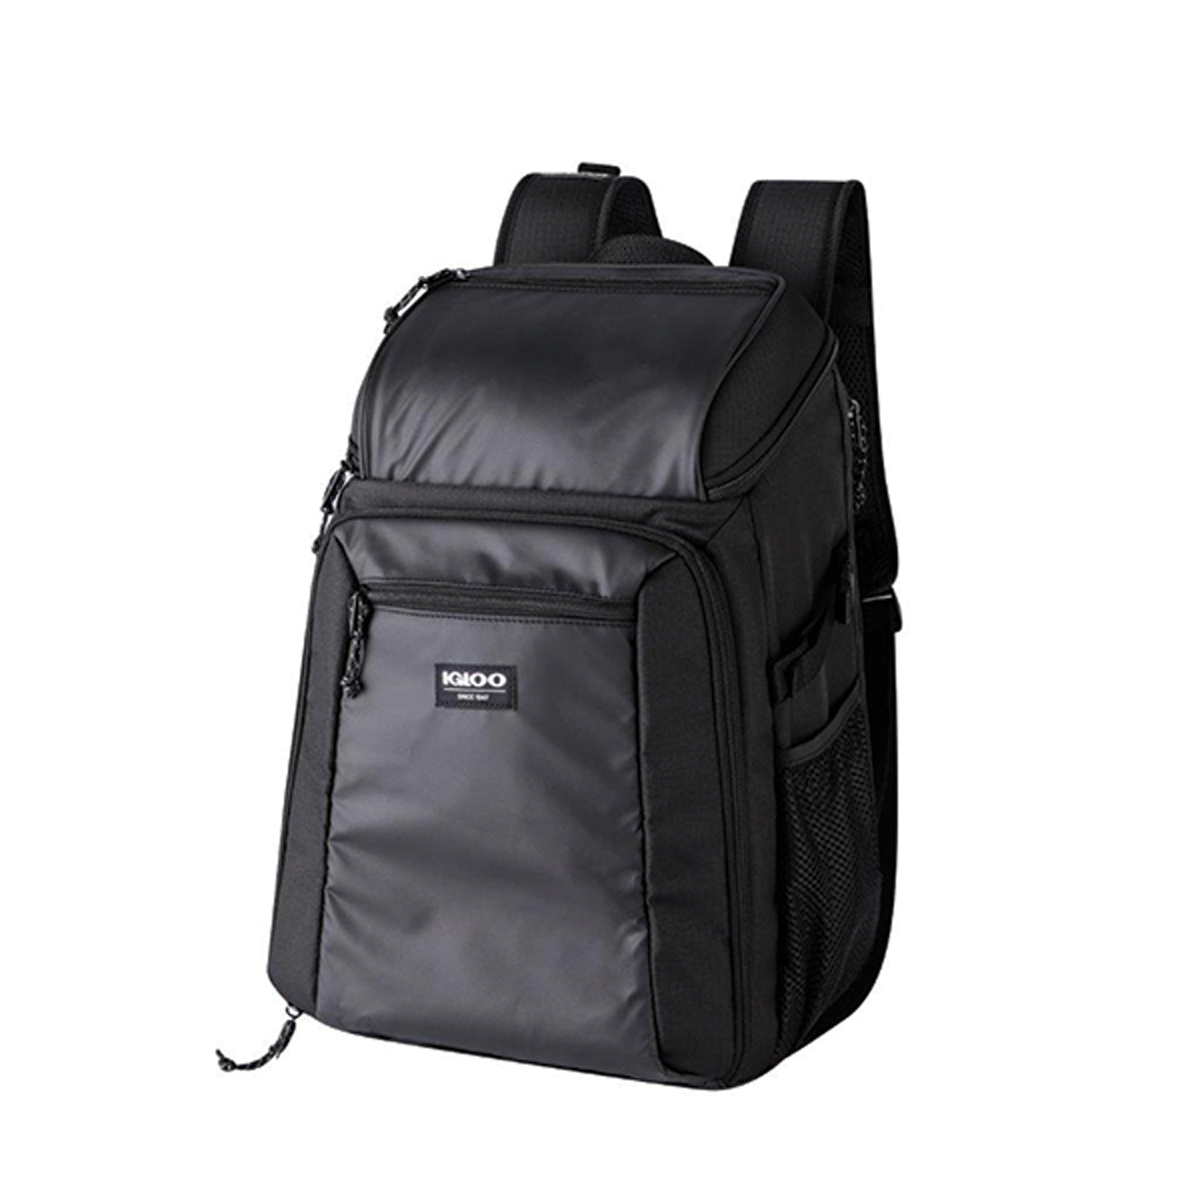 Outdoorsman Gizmo Backpack, Black, swatch